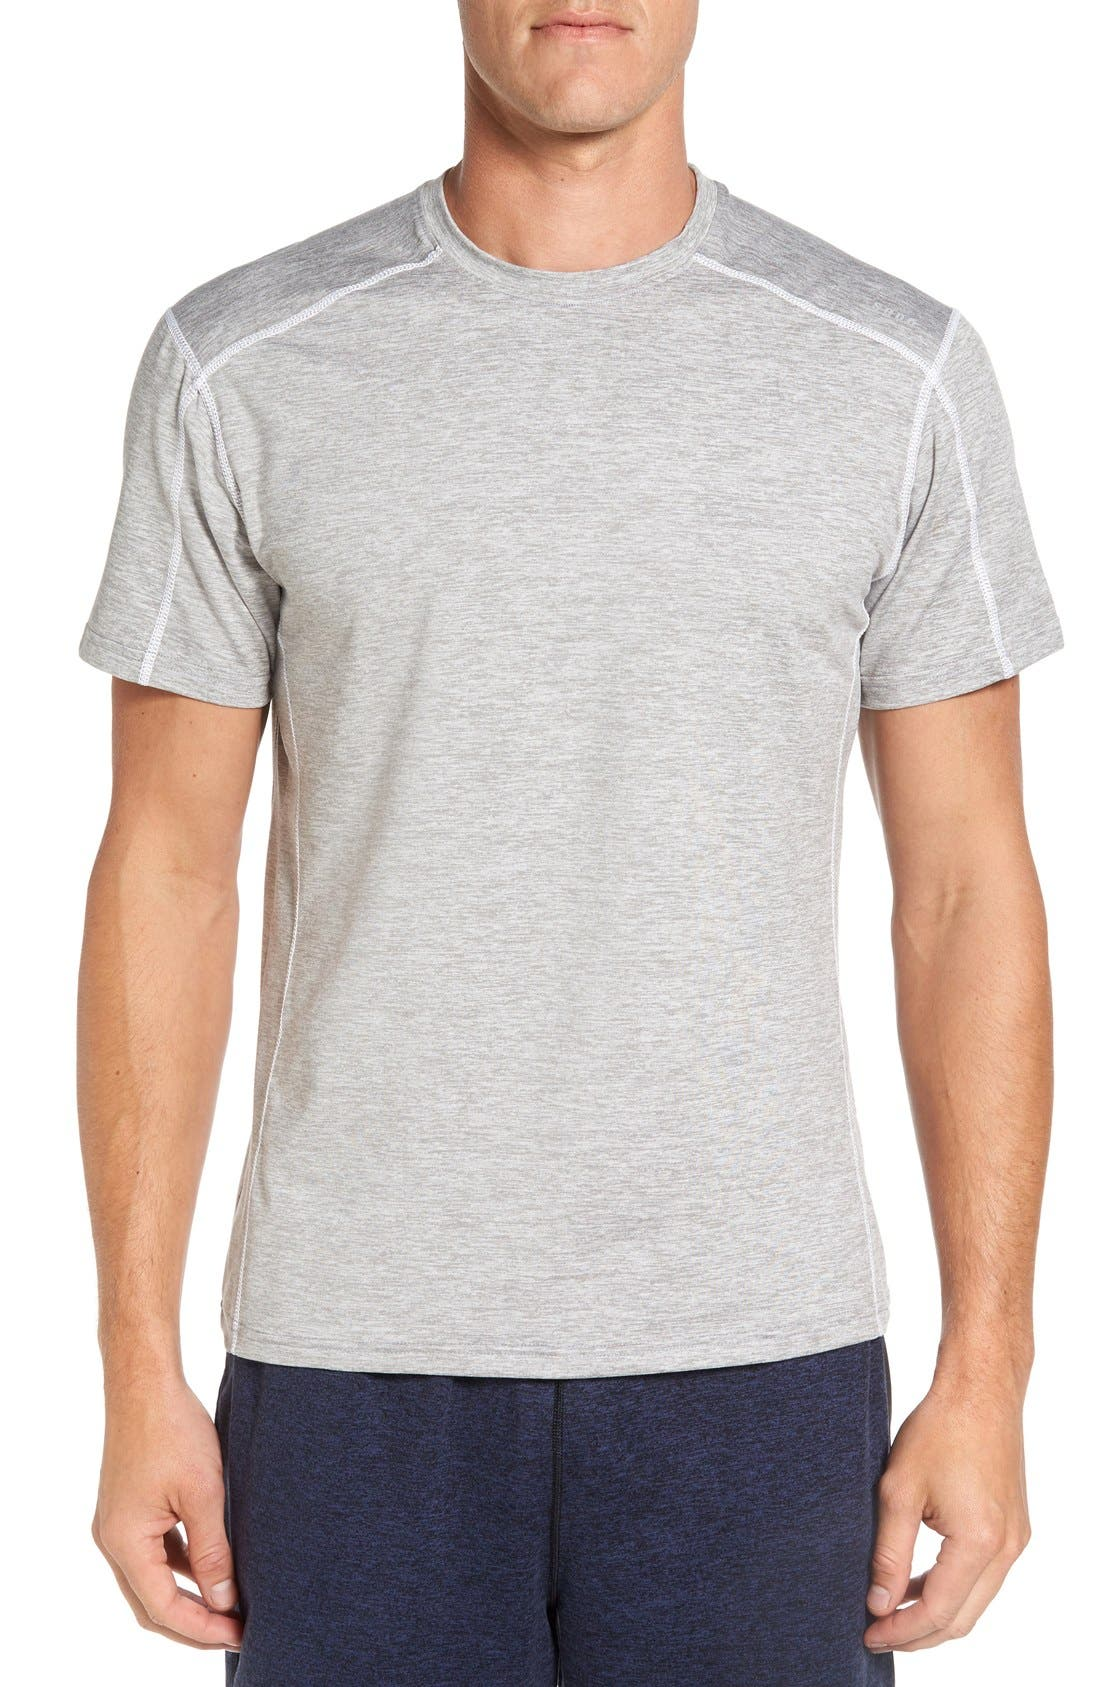 Alternate Image 1 Selected - SODO 'Cooldown' Moisture Wicking Training T-Shirt